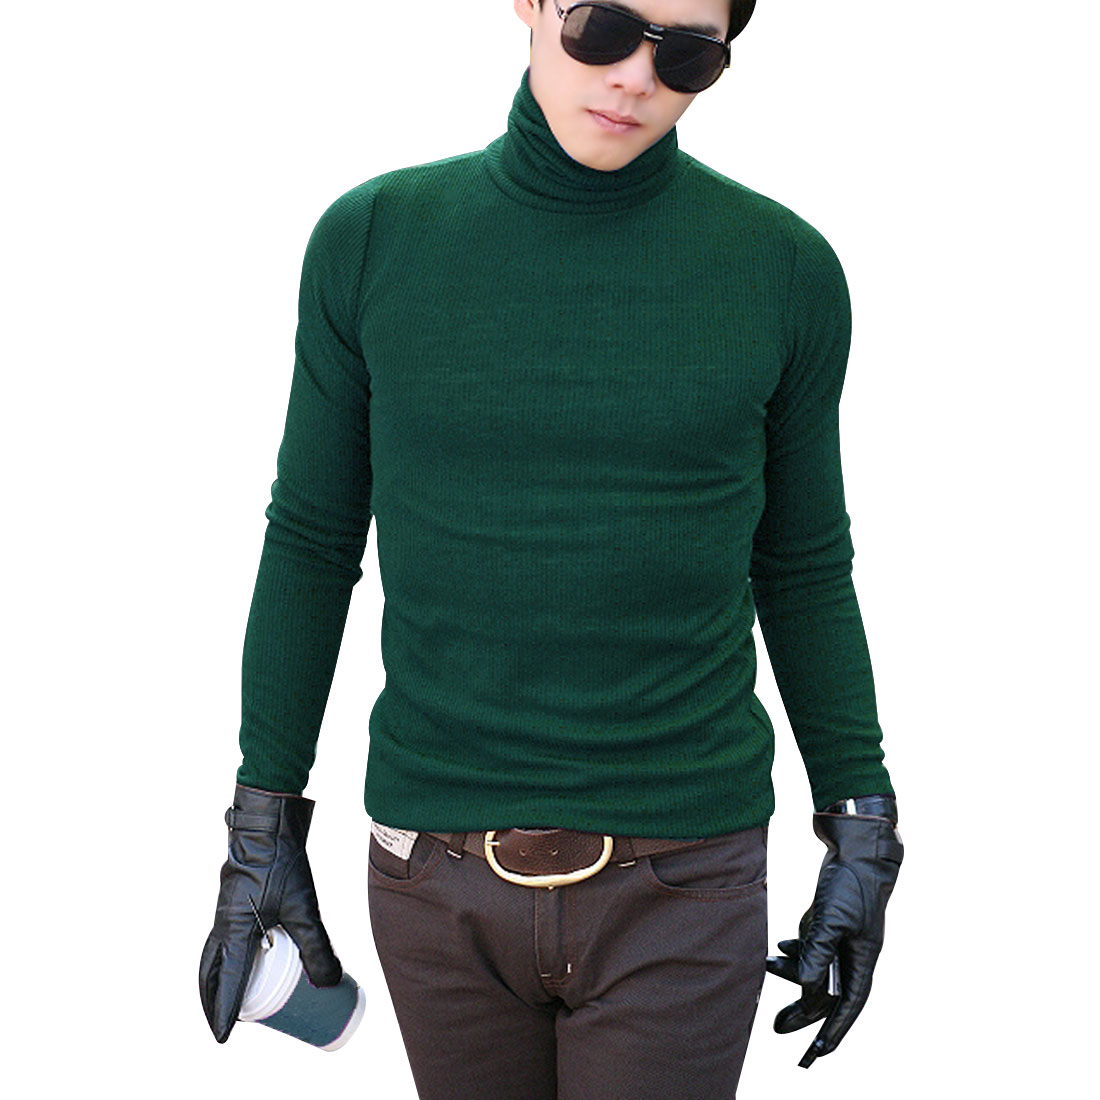 Men Green Stretchy Pullover Design Long SLeeve Easy Matching Leisure Shirt S